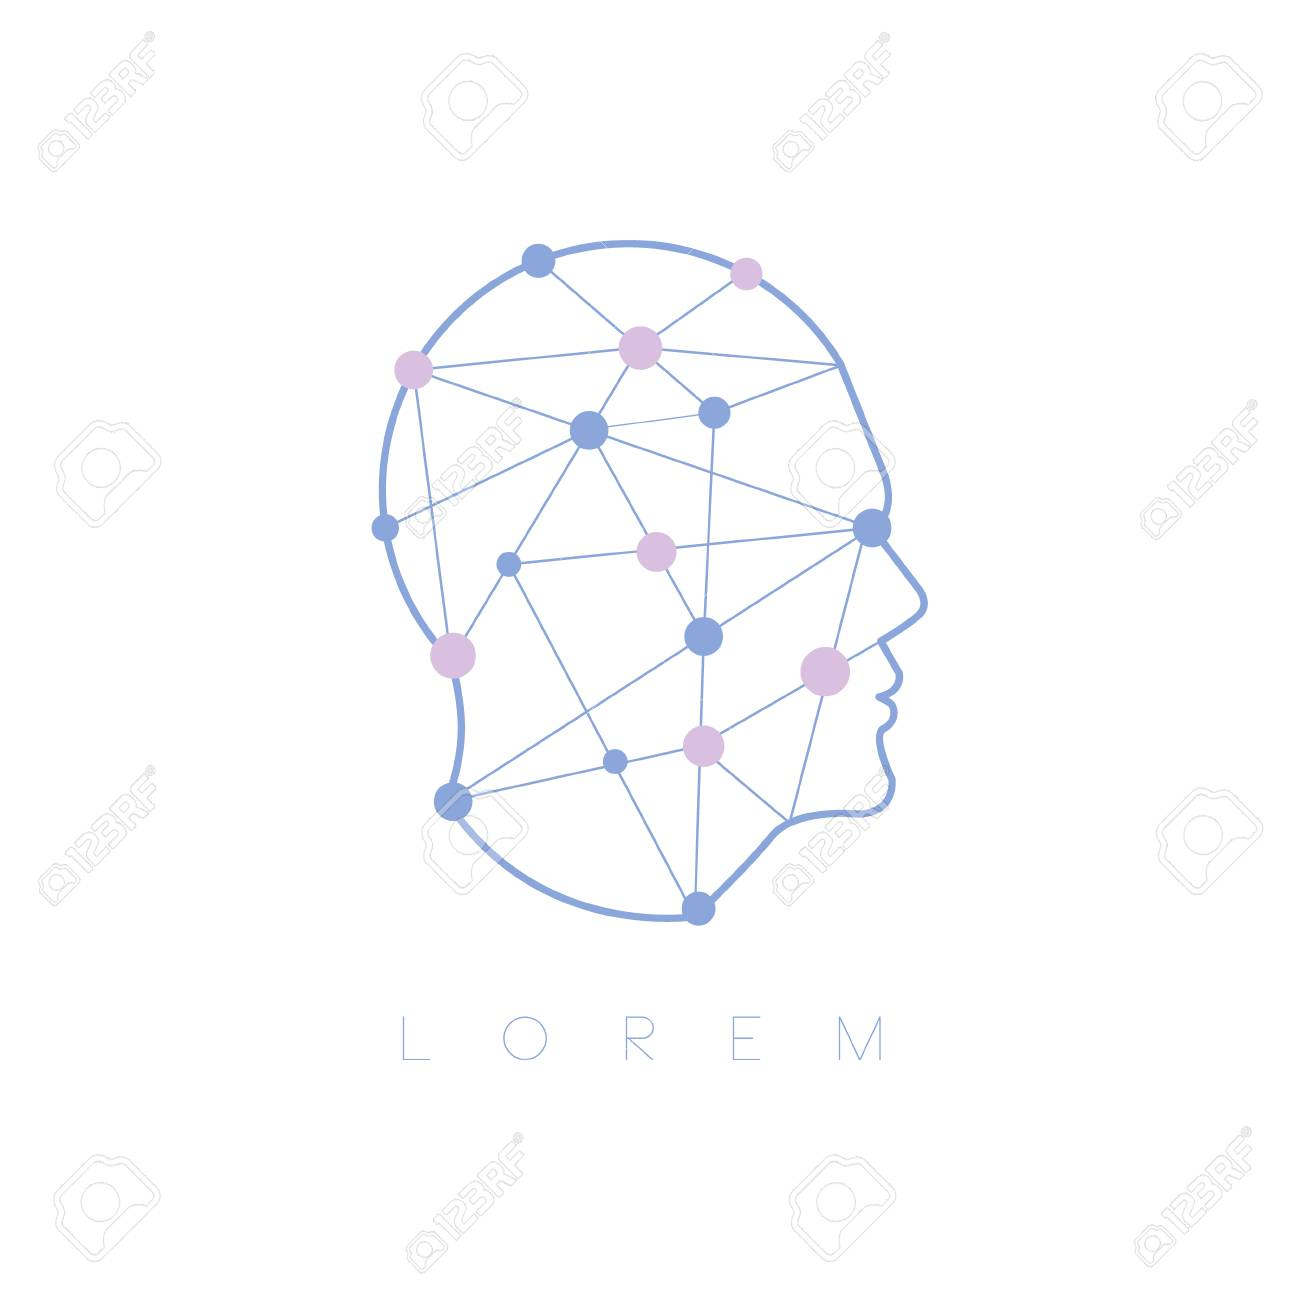 62528968 geometric shapes inside human head abstract design pastel icon man head shape filled with patterns a geometric shapes inside human head abstract design pastel icon